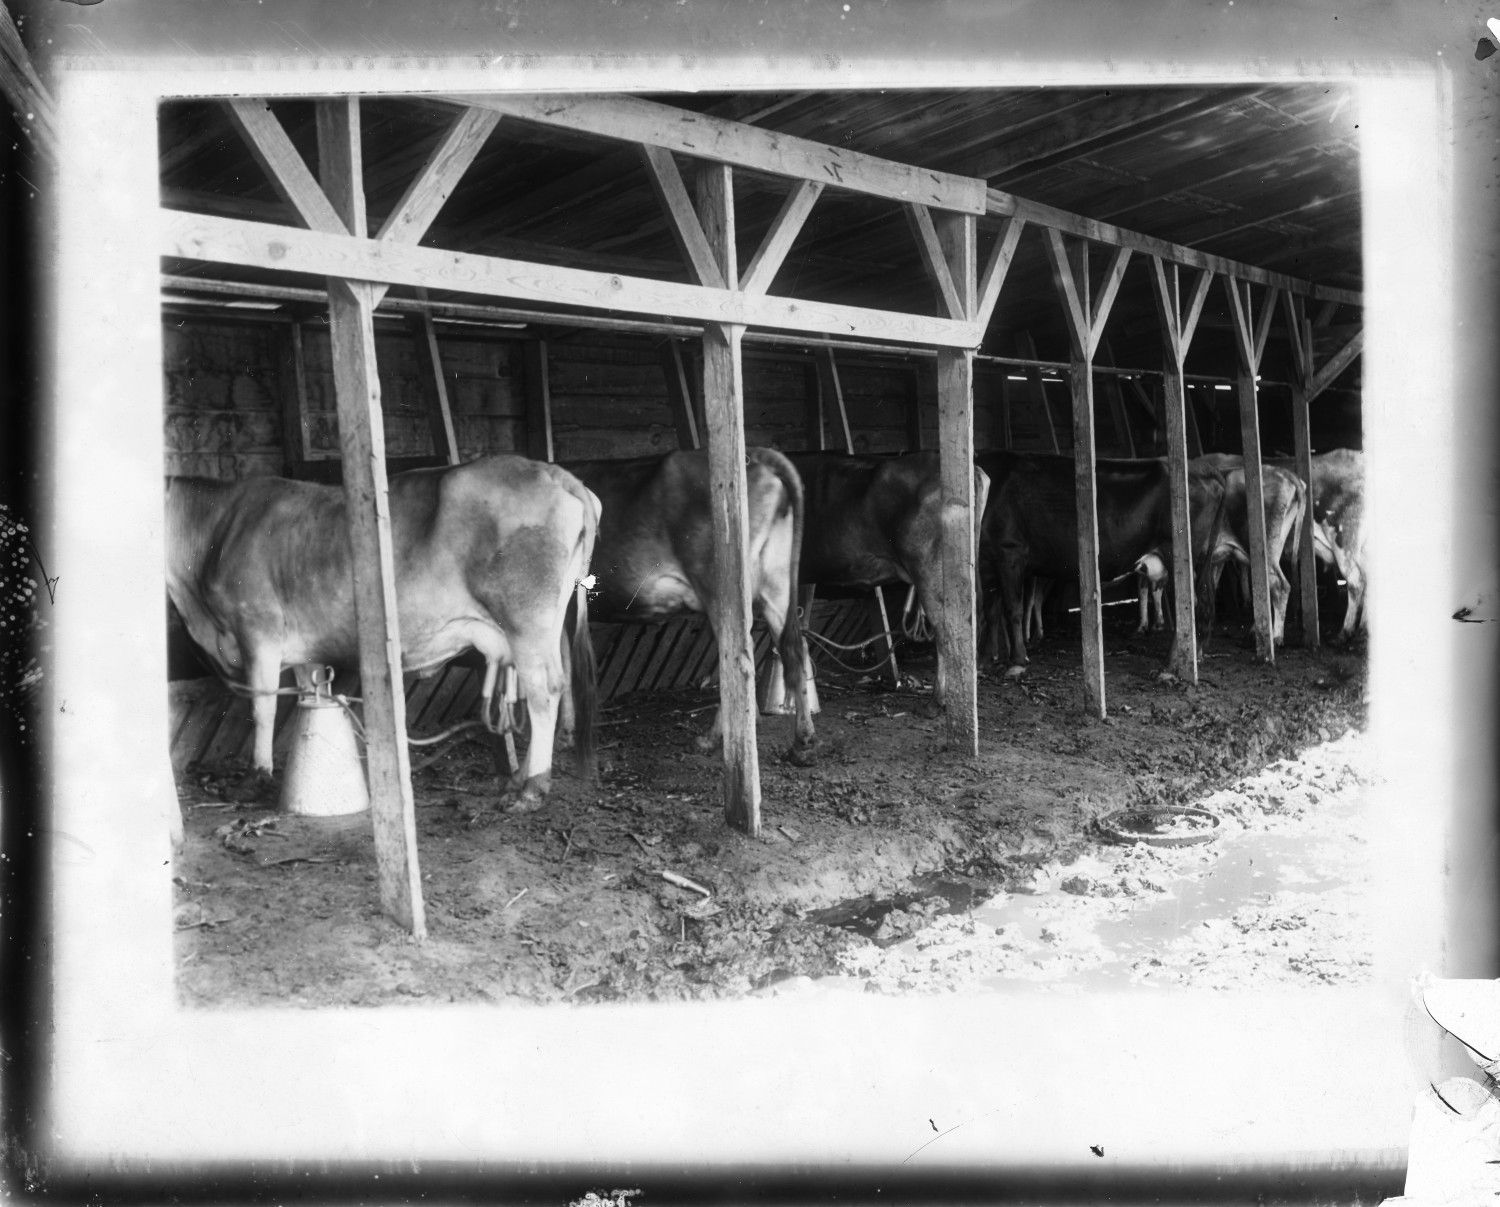 [Cattle in milking shed]                                                                                                      [Sequence #]: 1 of 1